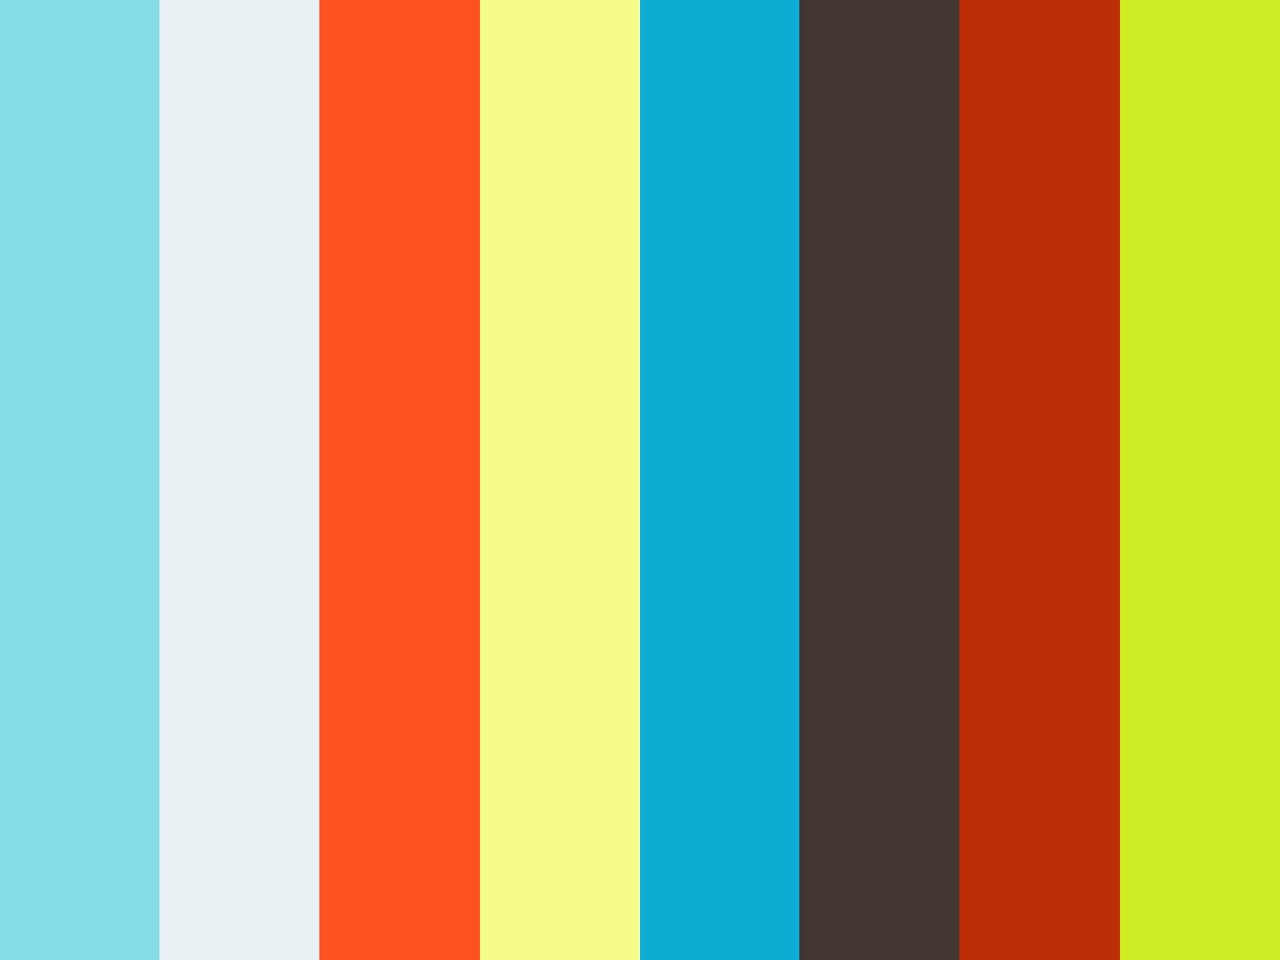 TALES OF THE SMITHS comics exhibition by Con Chrisoulis